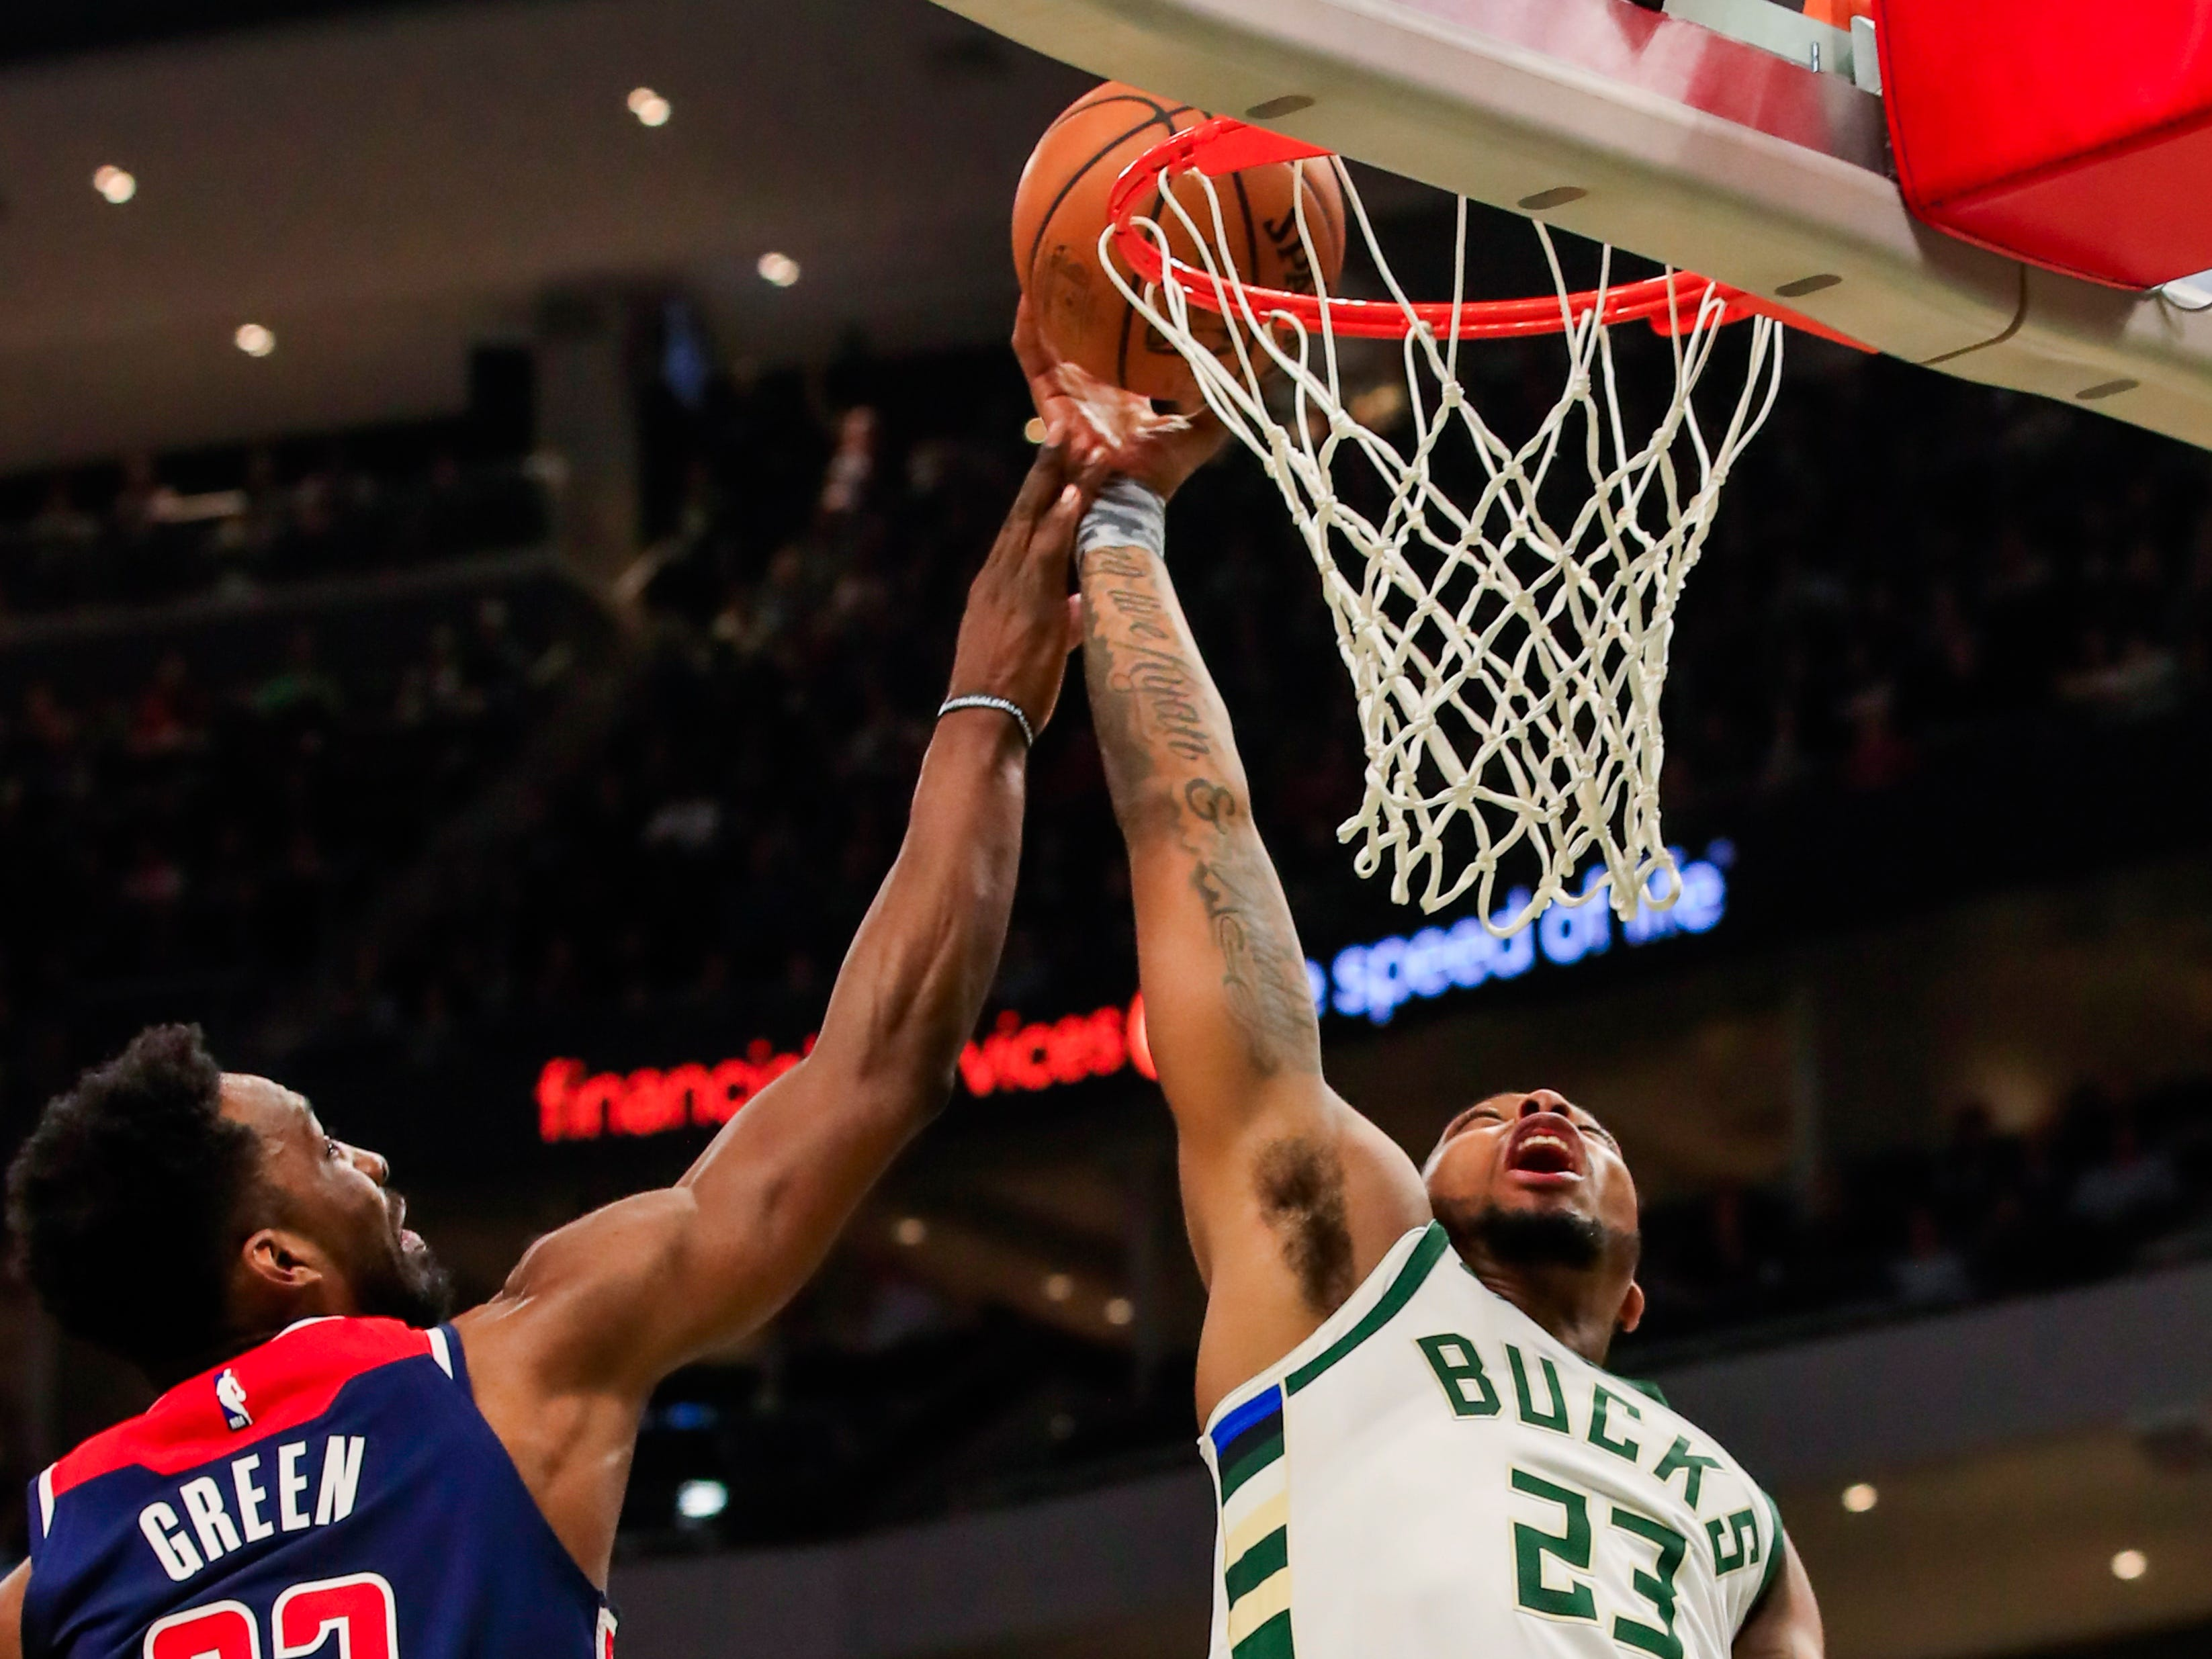 Bucks guard Sterling Brown scores against Wizards forward Jeff Green on Wednesday night.